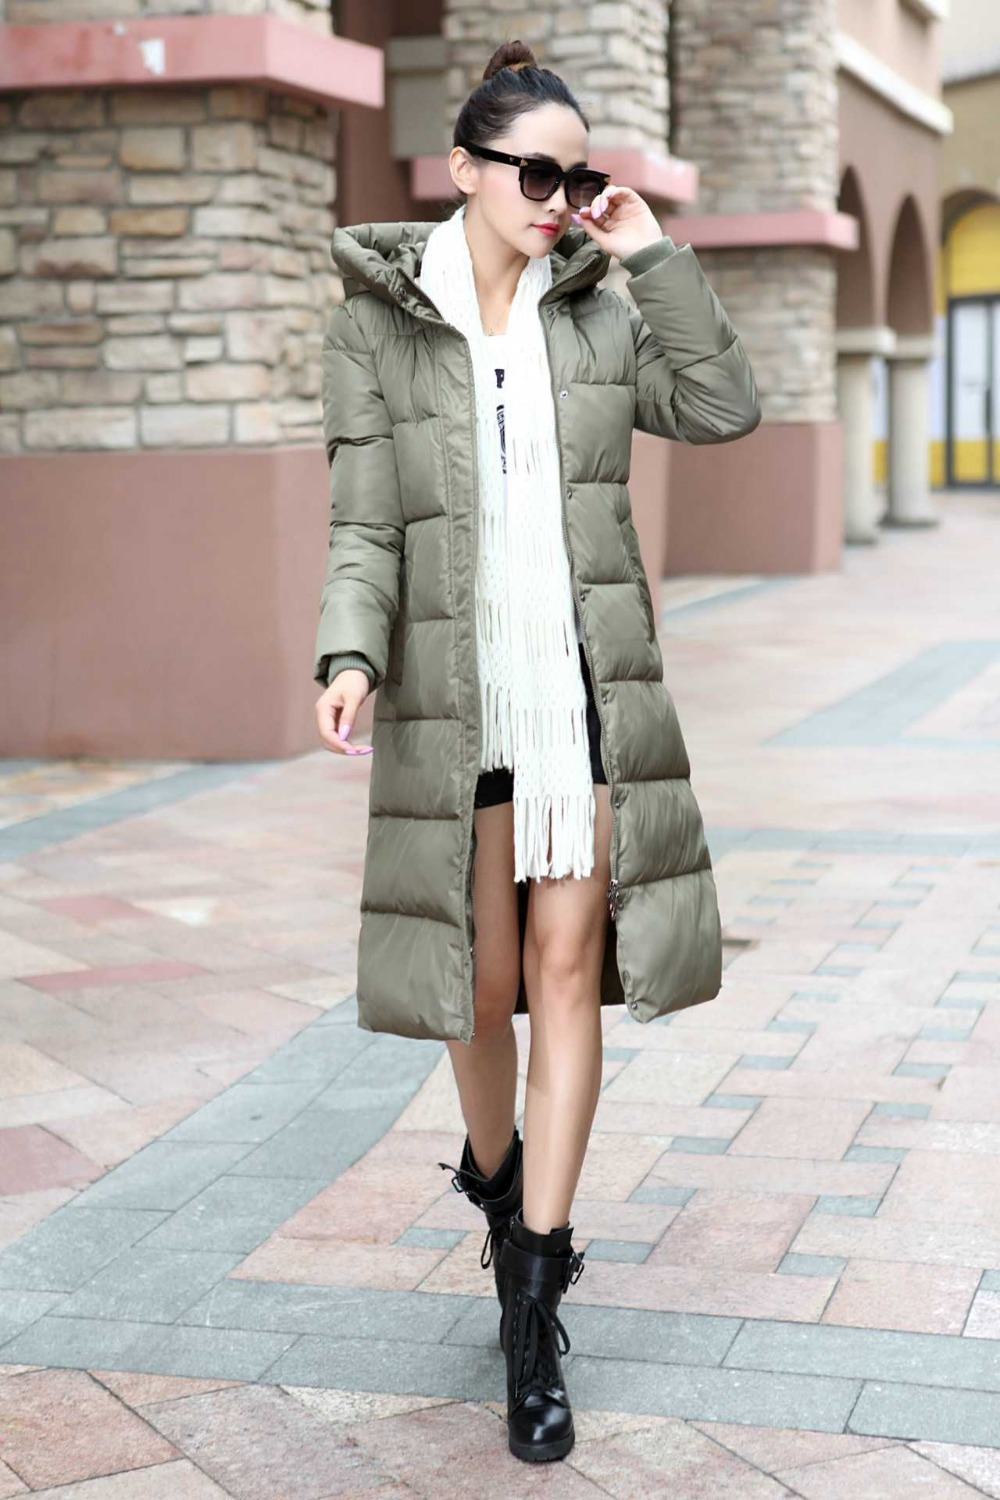 New Arrival Fashion Korean Winter Thickening Camouflage Long Sleeves Zipper And Covered Button Down Jacket Women Coat H4329